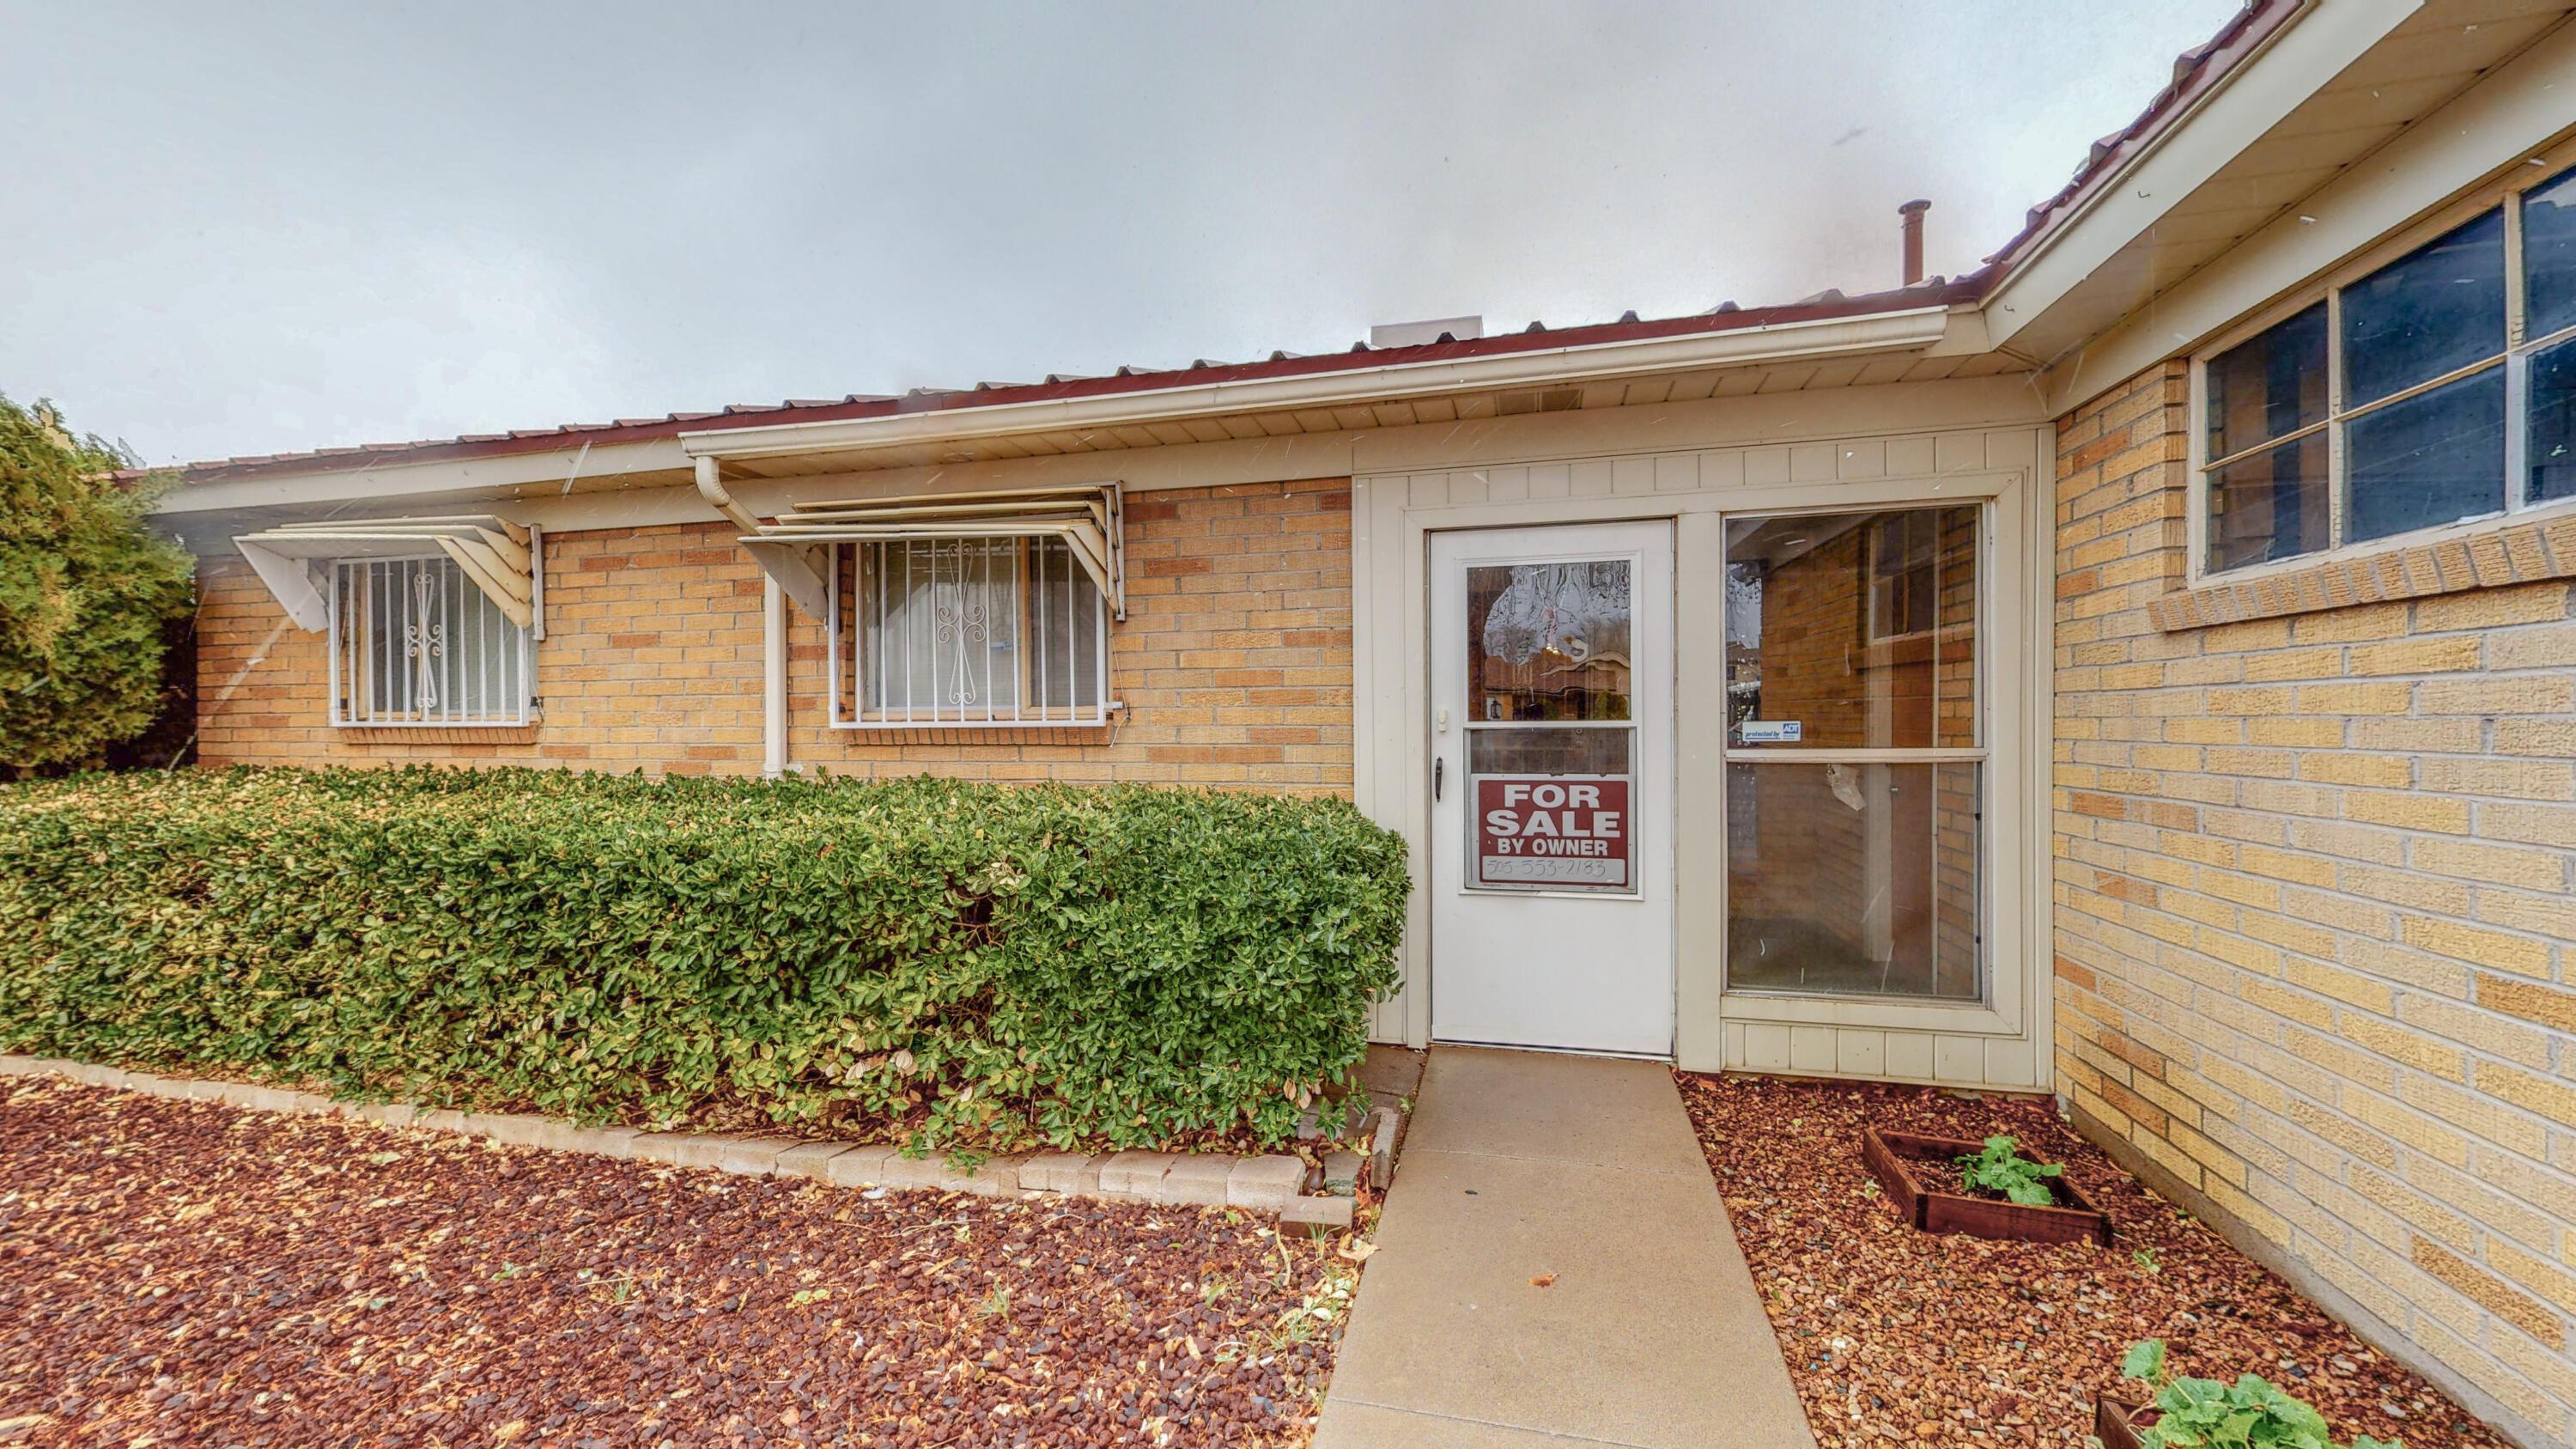 Welcome home! This wonderful 3 bed 2 bath home boasting over 2,000 square feet is ready for you to call home sweet home! This home has newer roof and water heater. Schedule a showing today before it's gone!